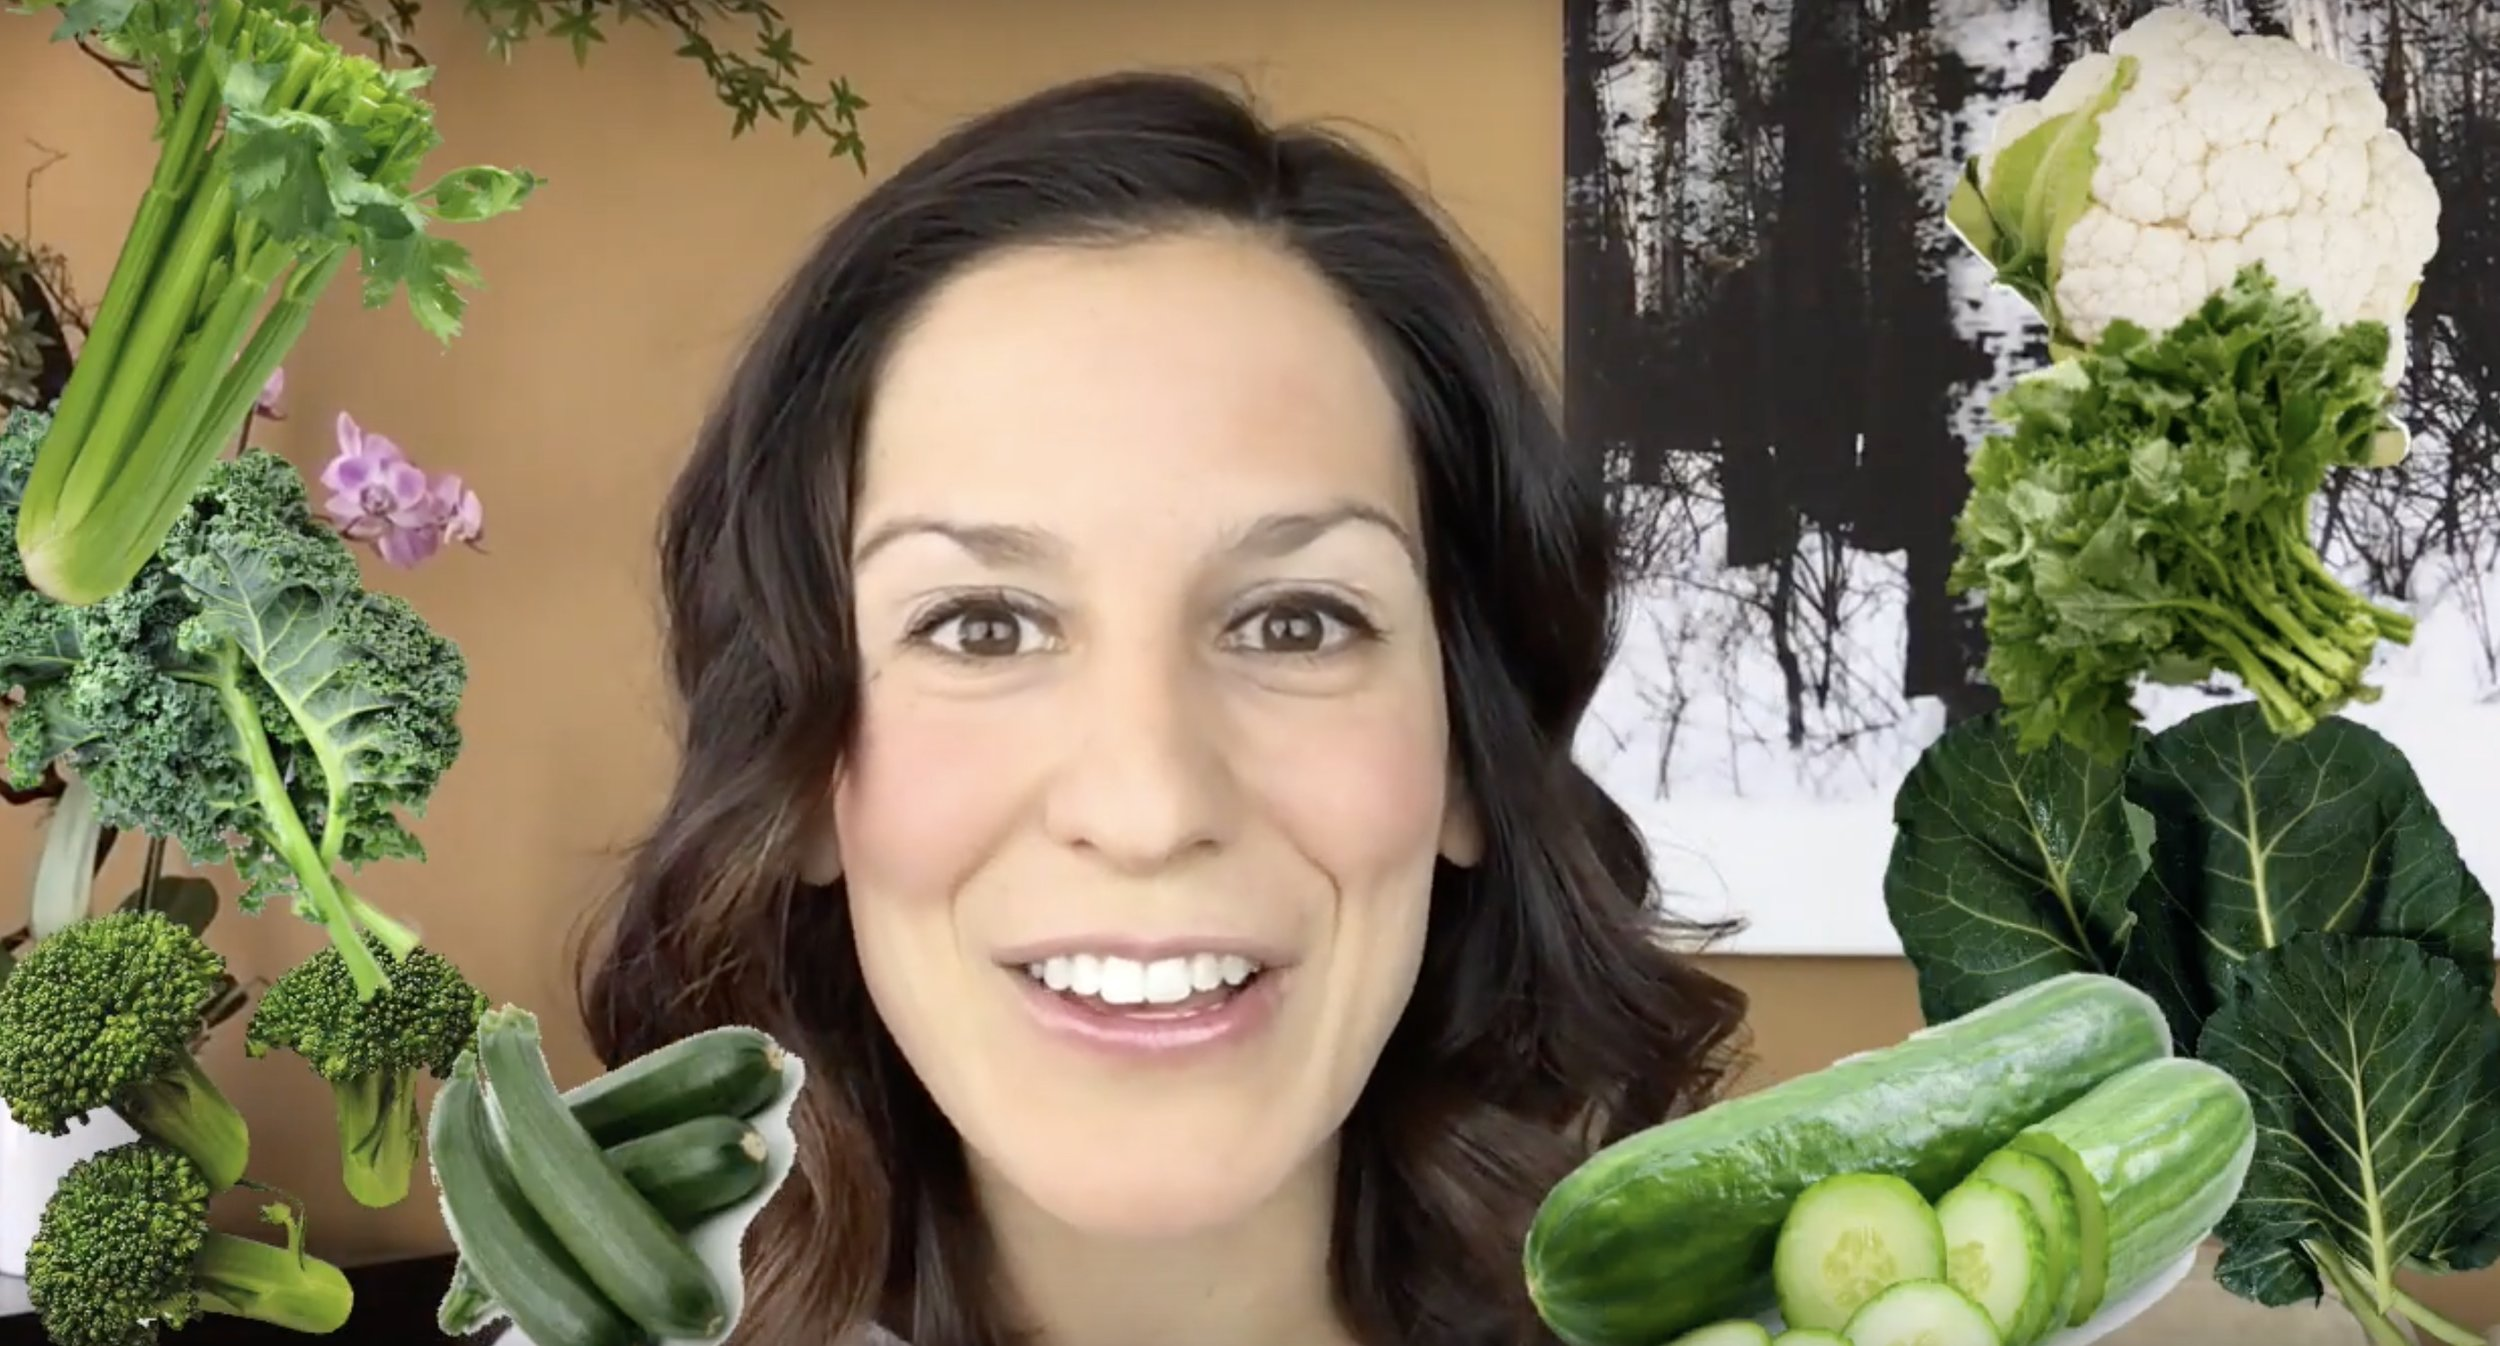 Dr. Laura's WIN Health Tips: Eat More Veg With Less Distress